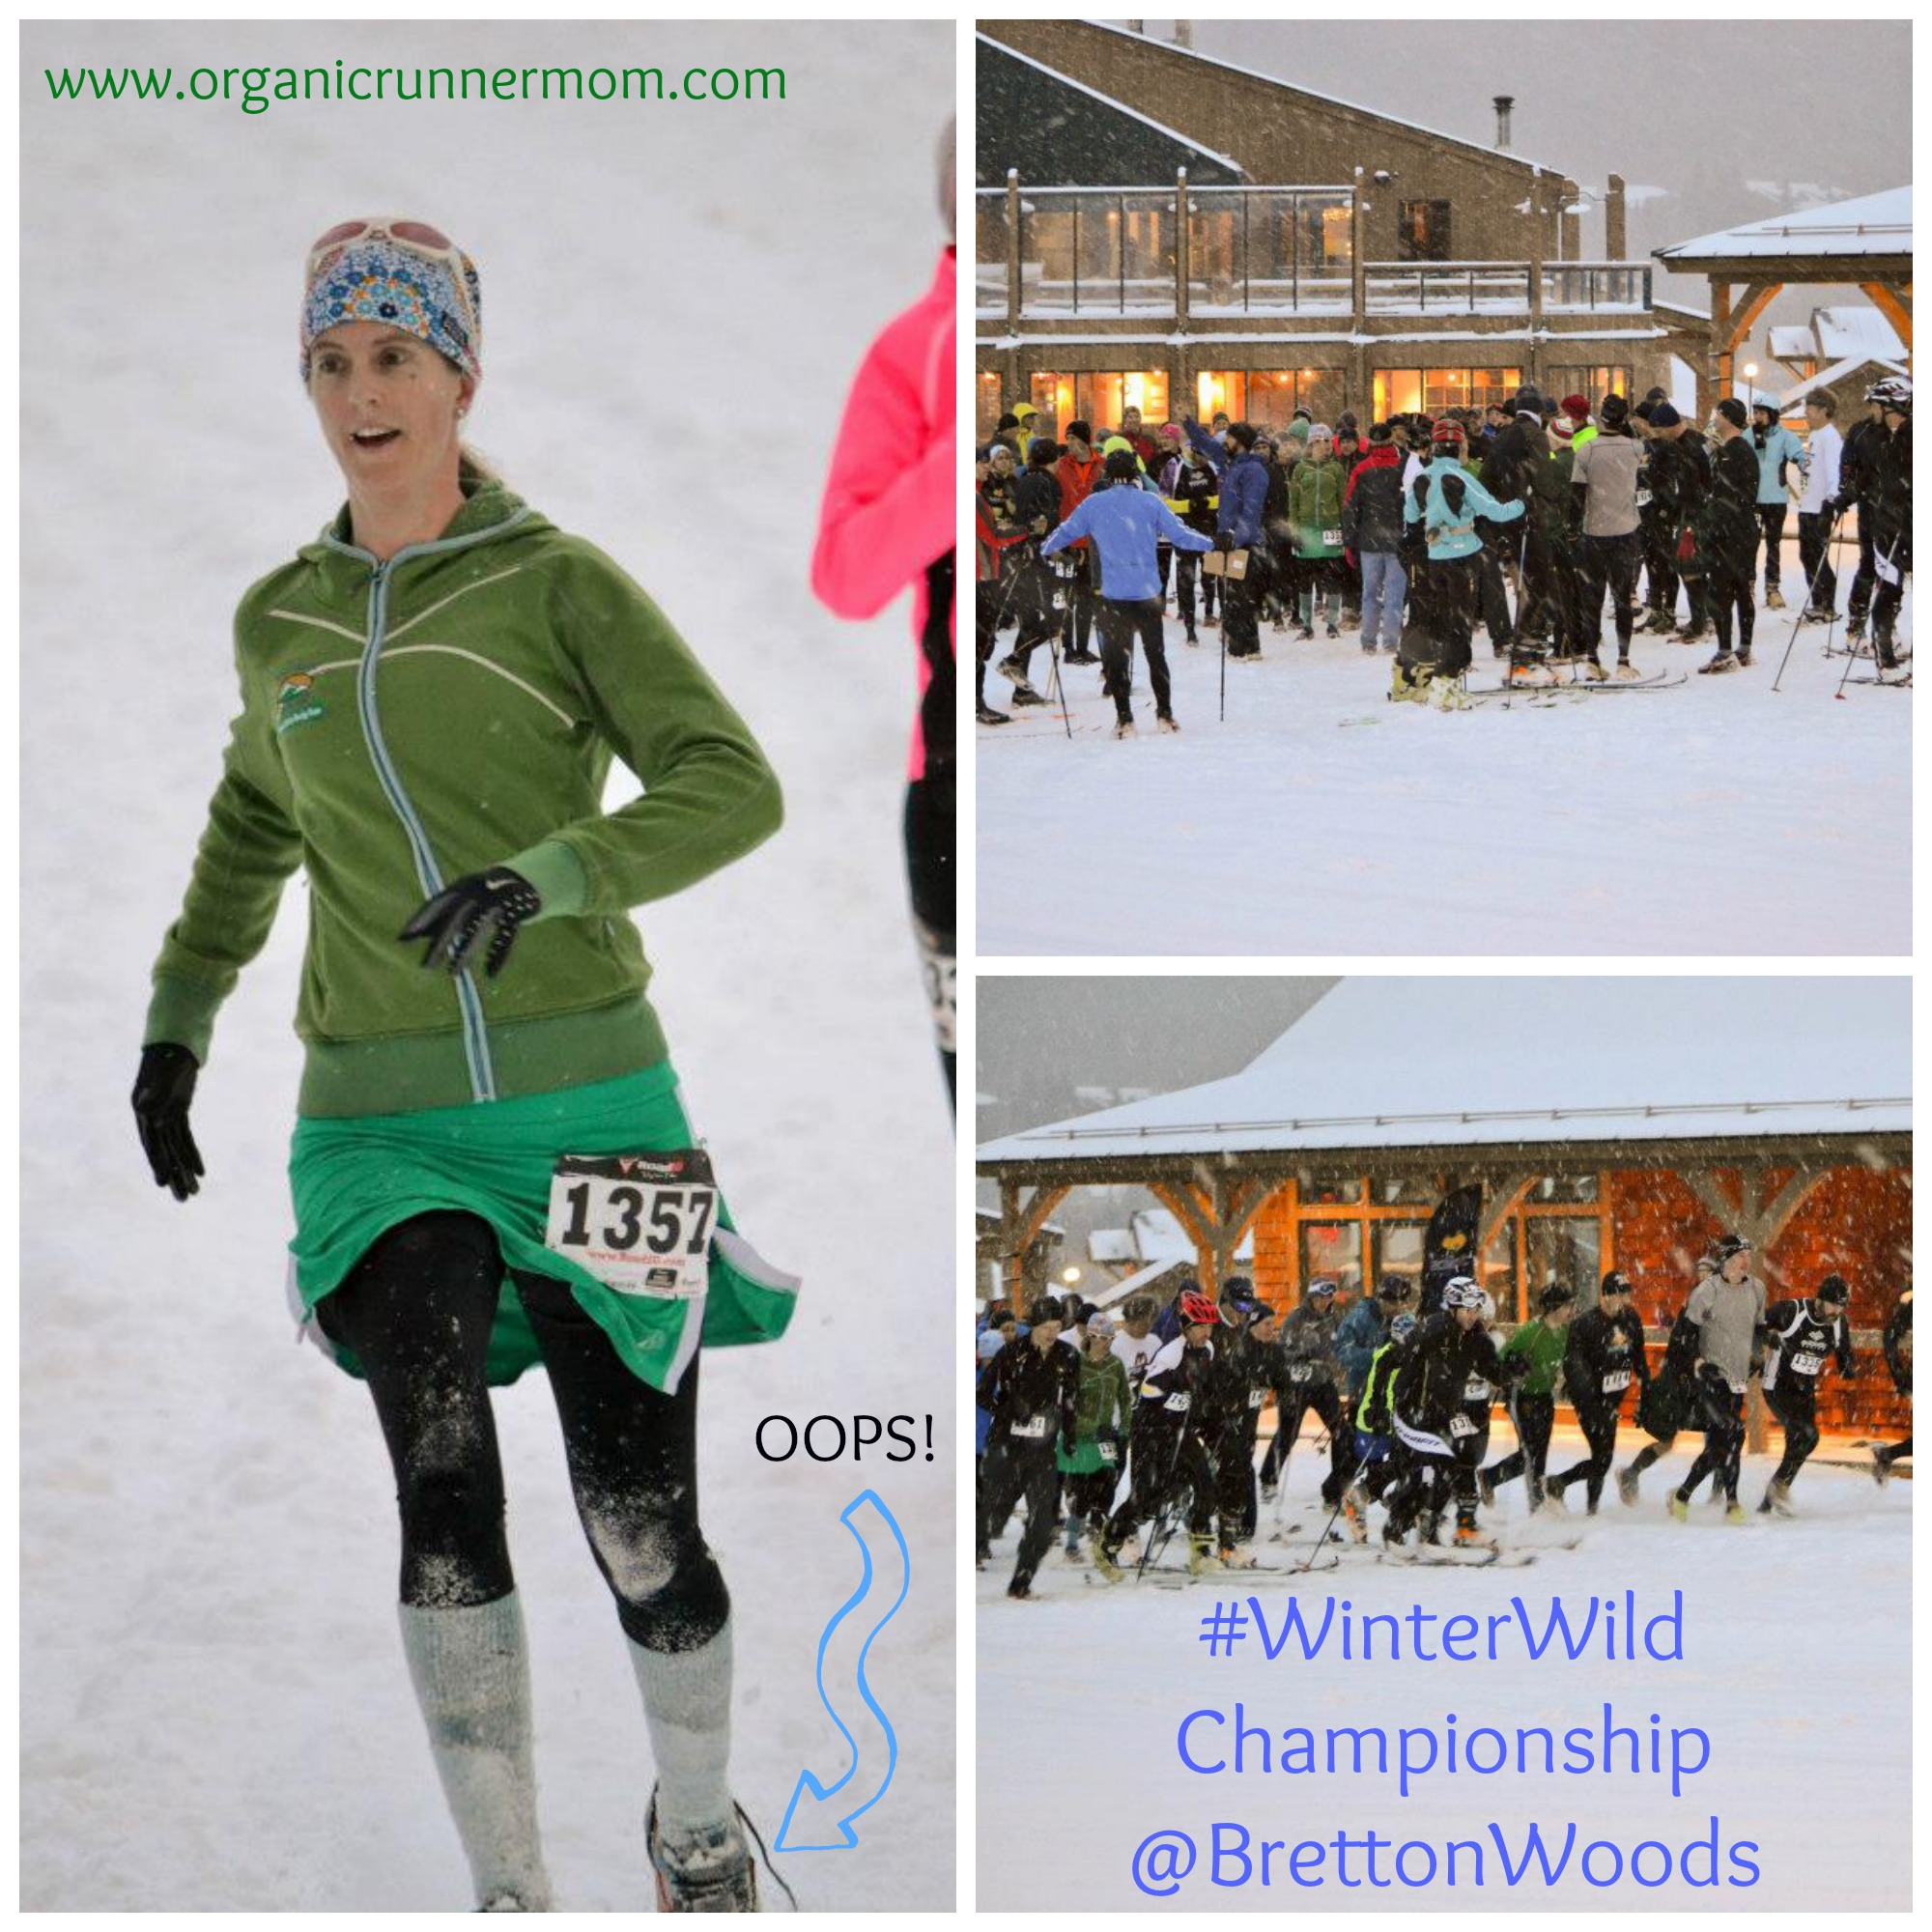 Winter Wild Championship at Bretton Woods Organic Runner Mom Team Amp